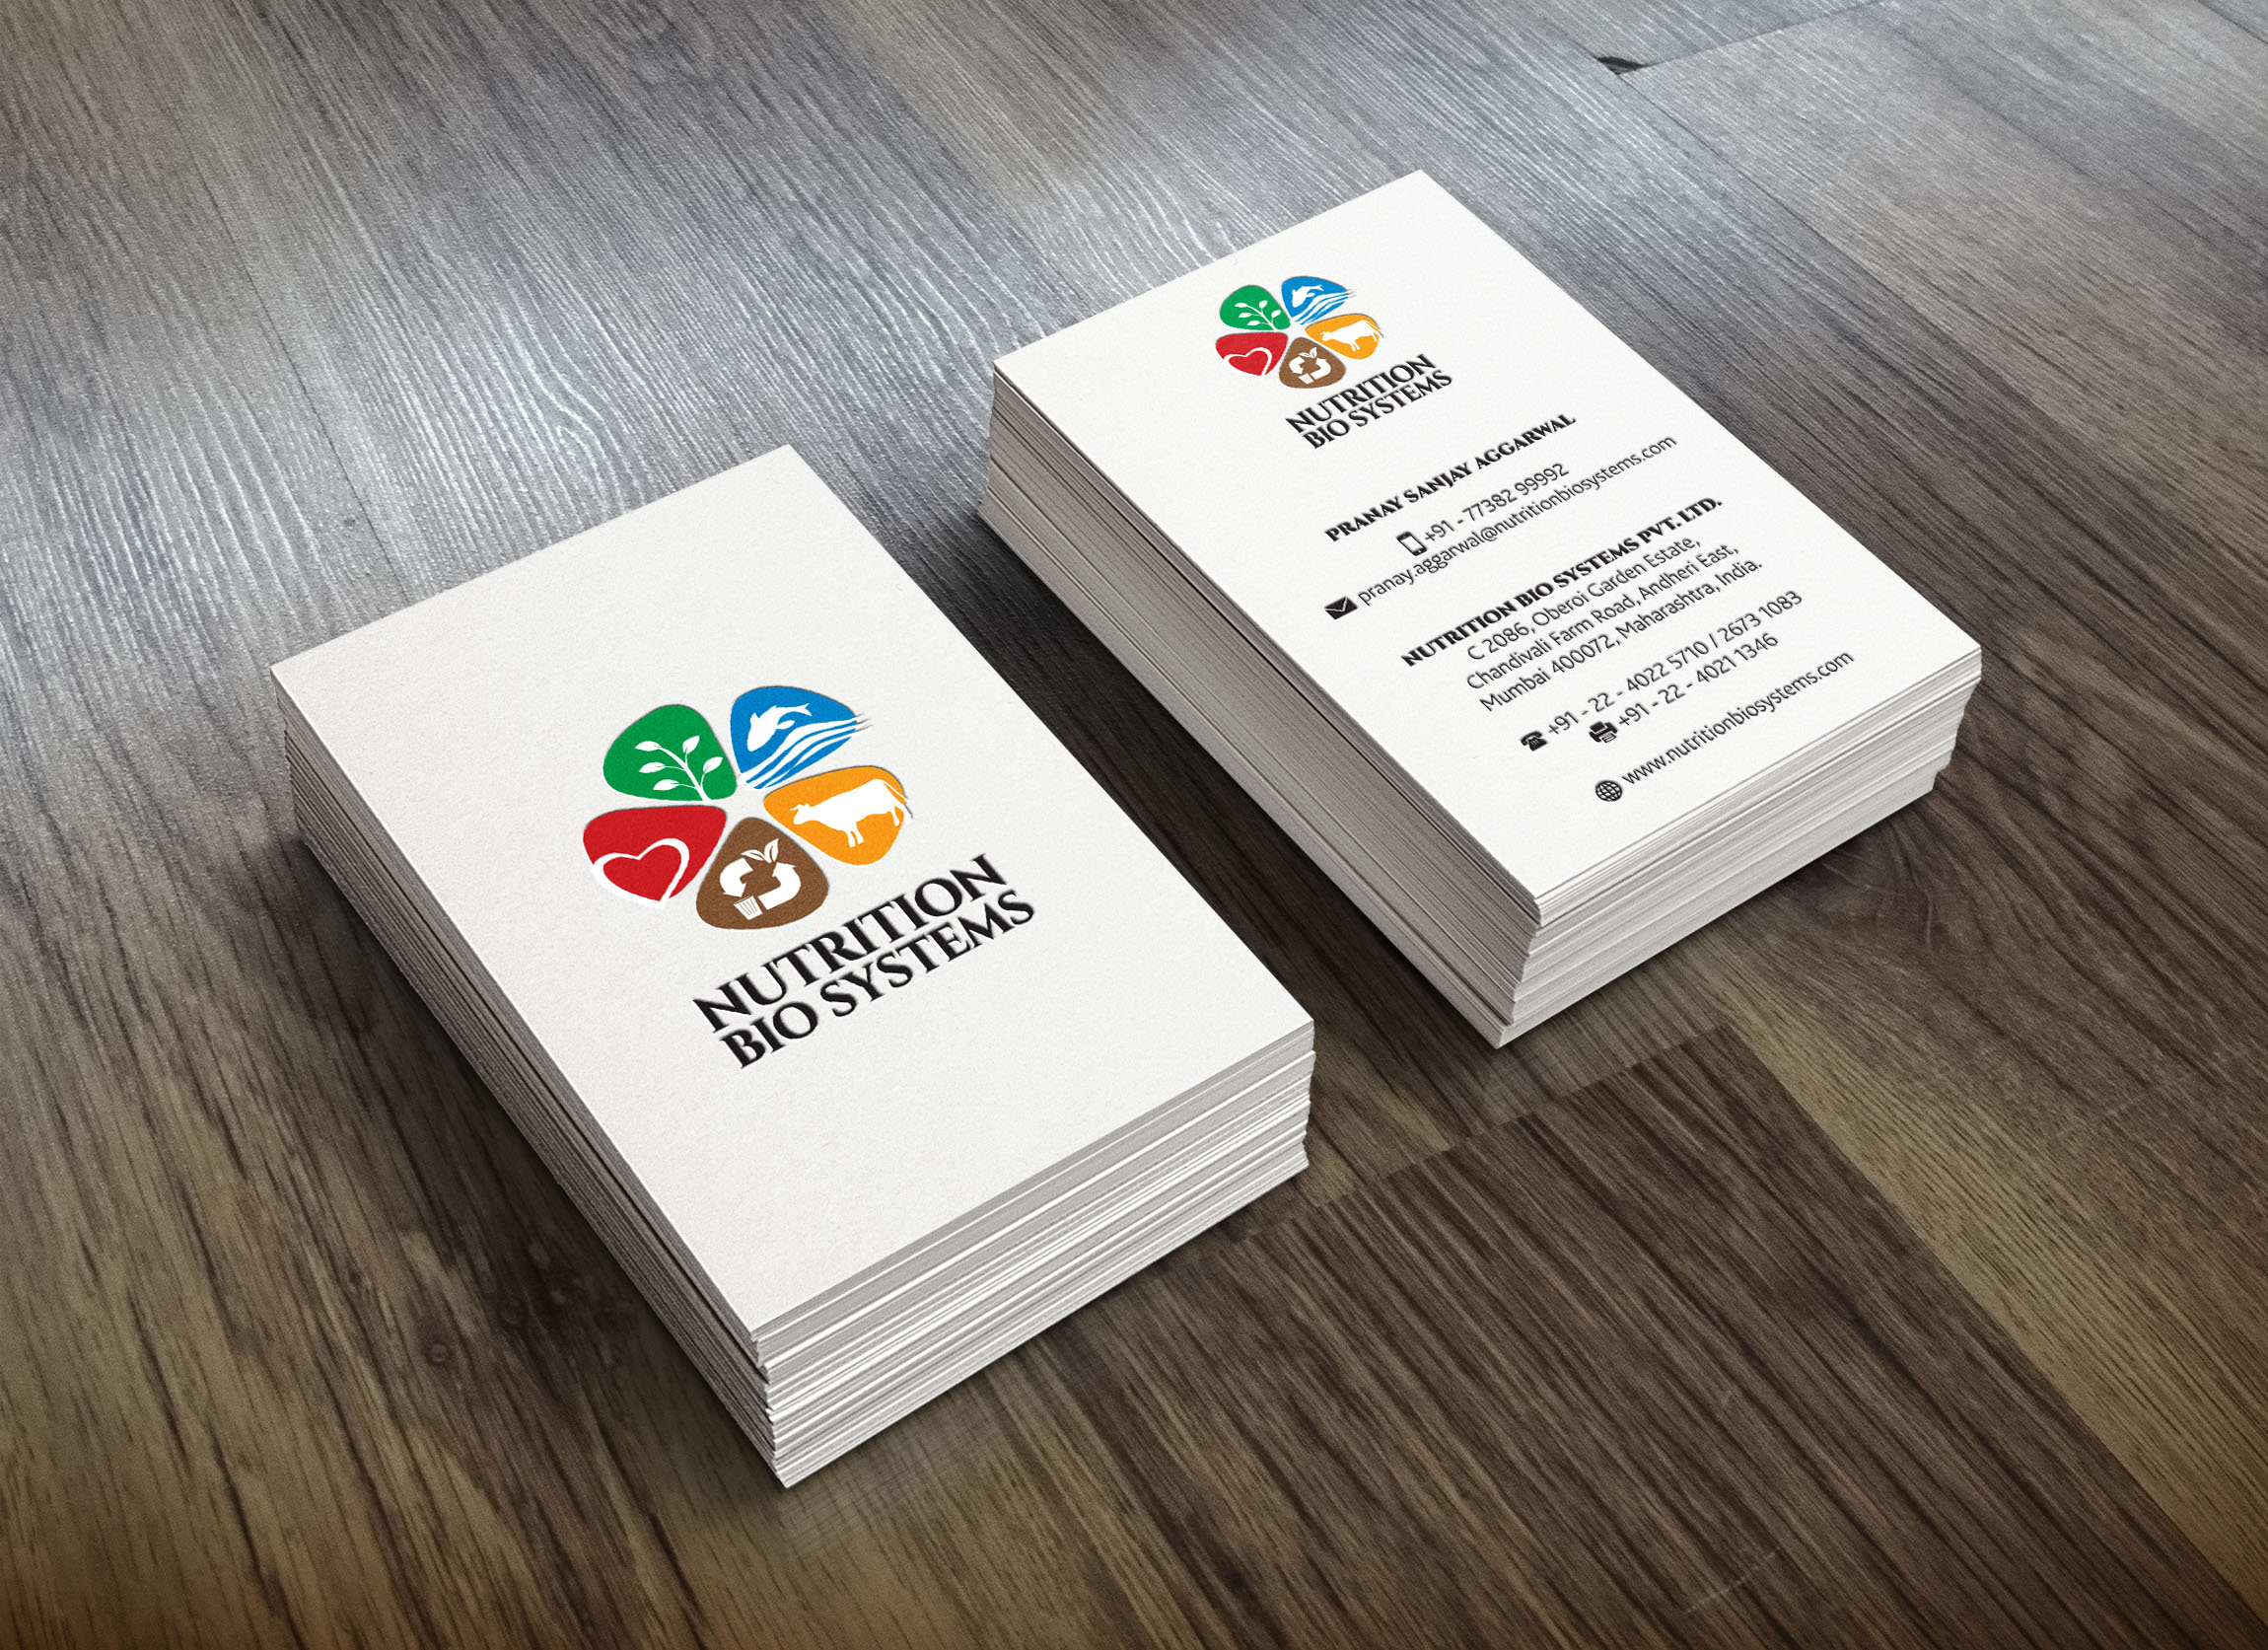 NBS Business Card